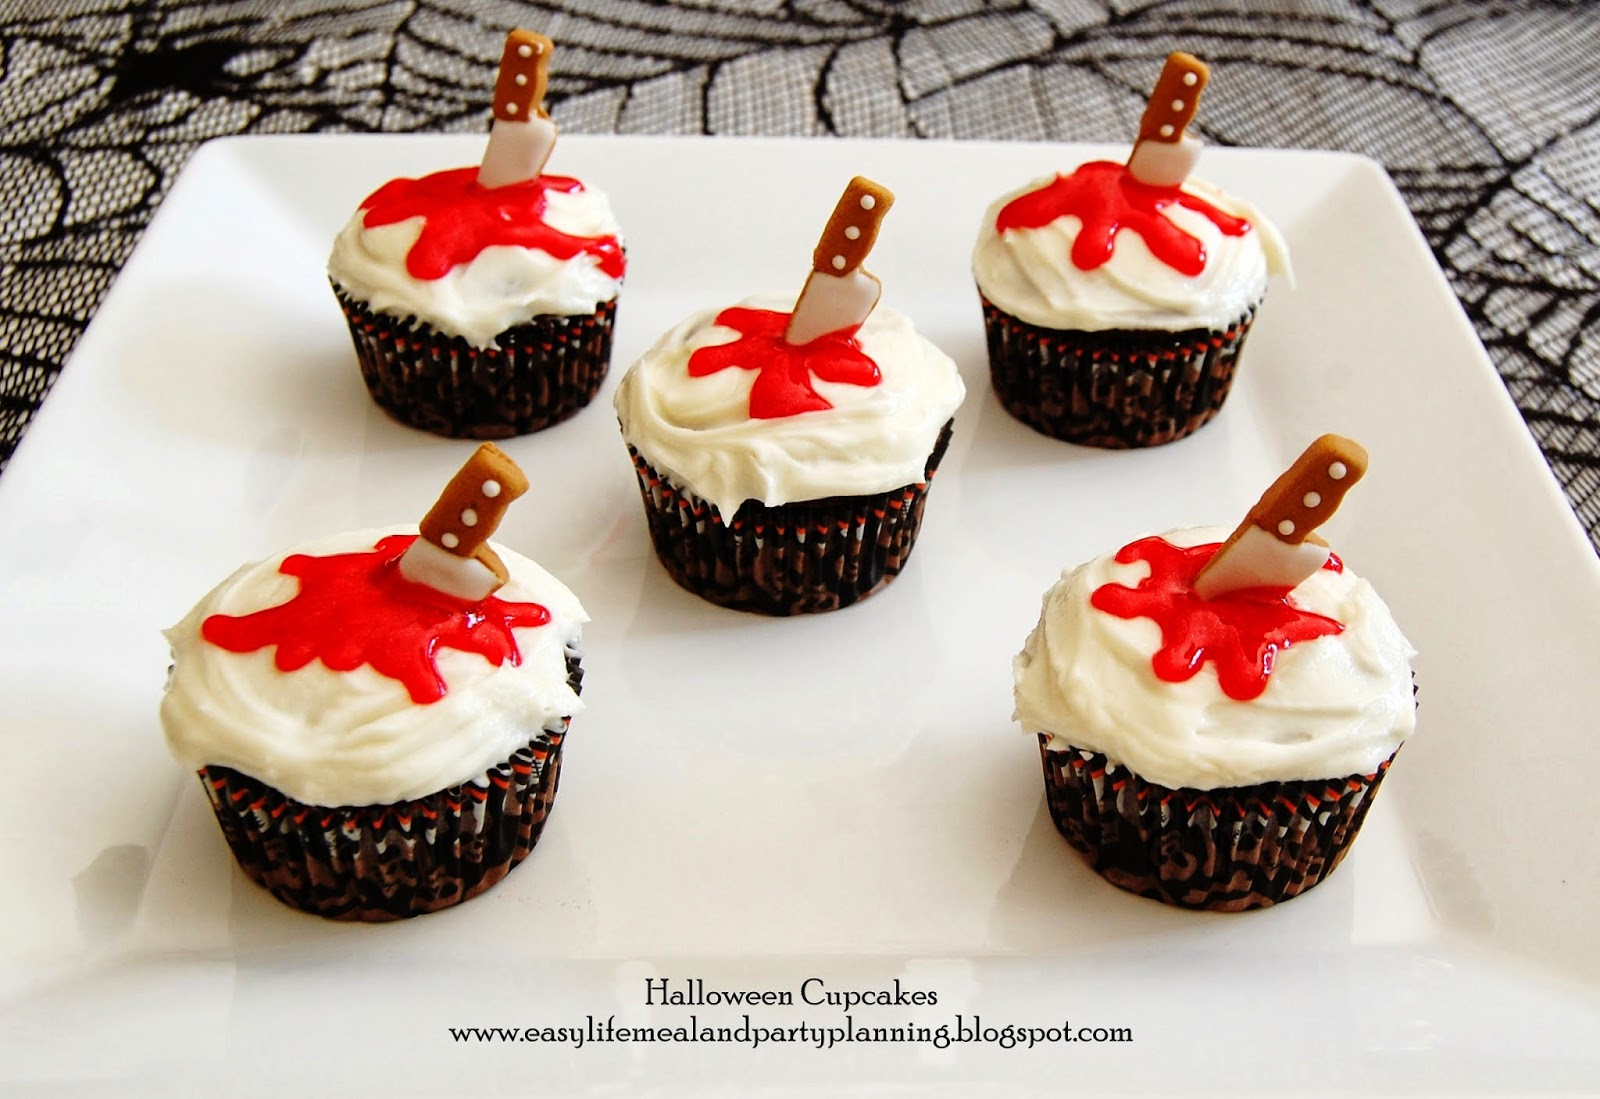 Cupcakes For Halloween  Easy Life Meal and Party Planning October 2013